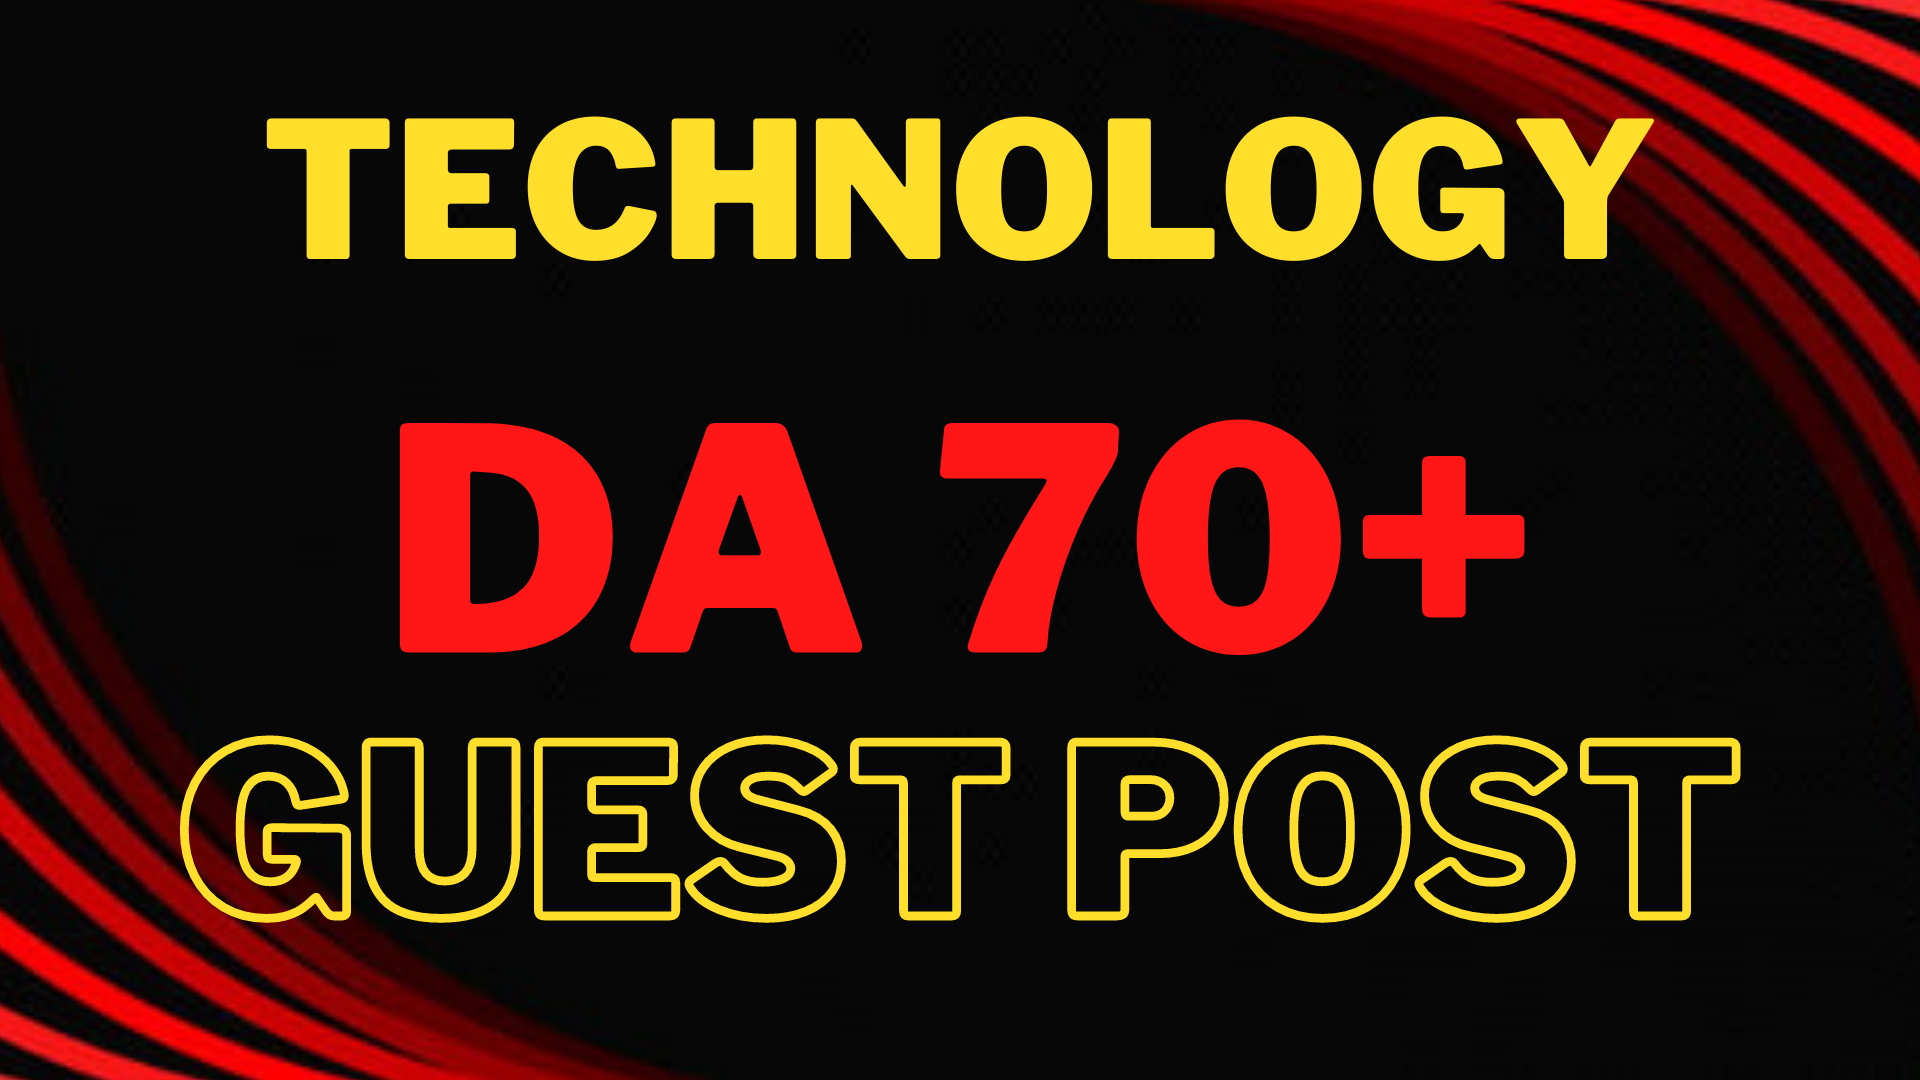 I'll make High DA 60 guest post on Technology for improve seo ranking.